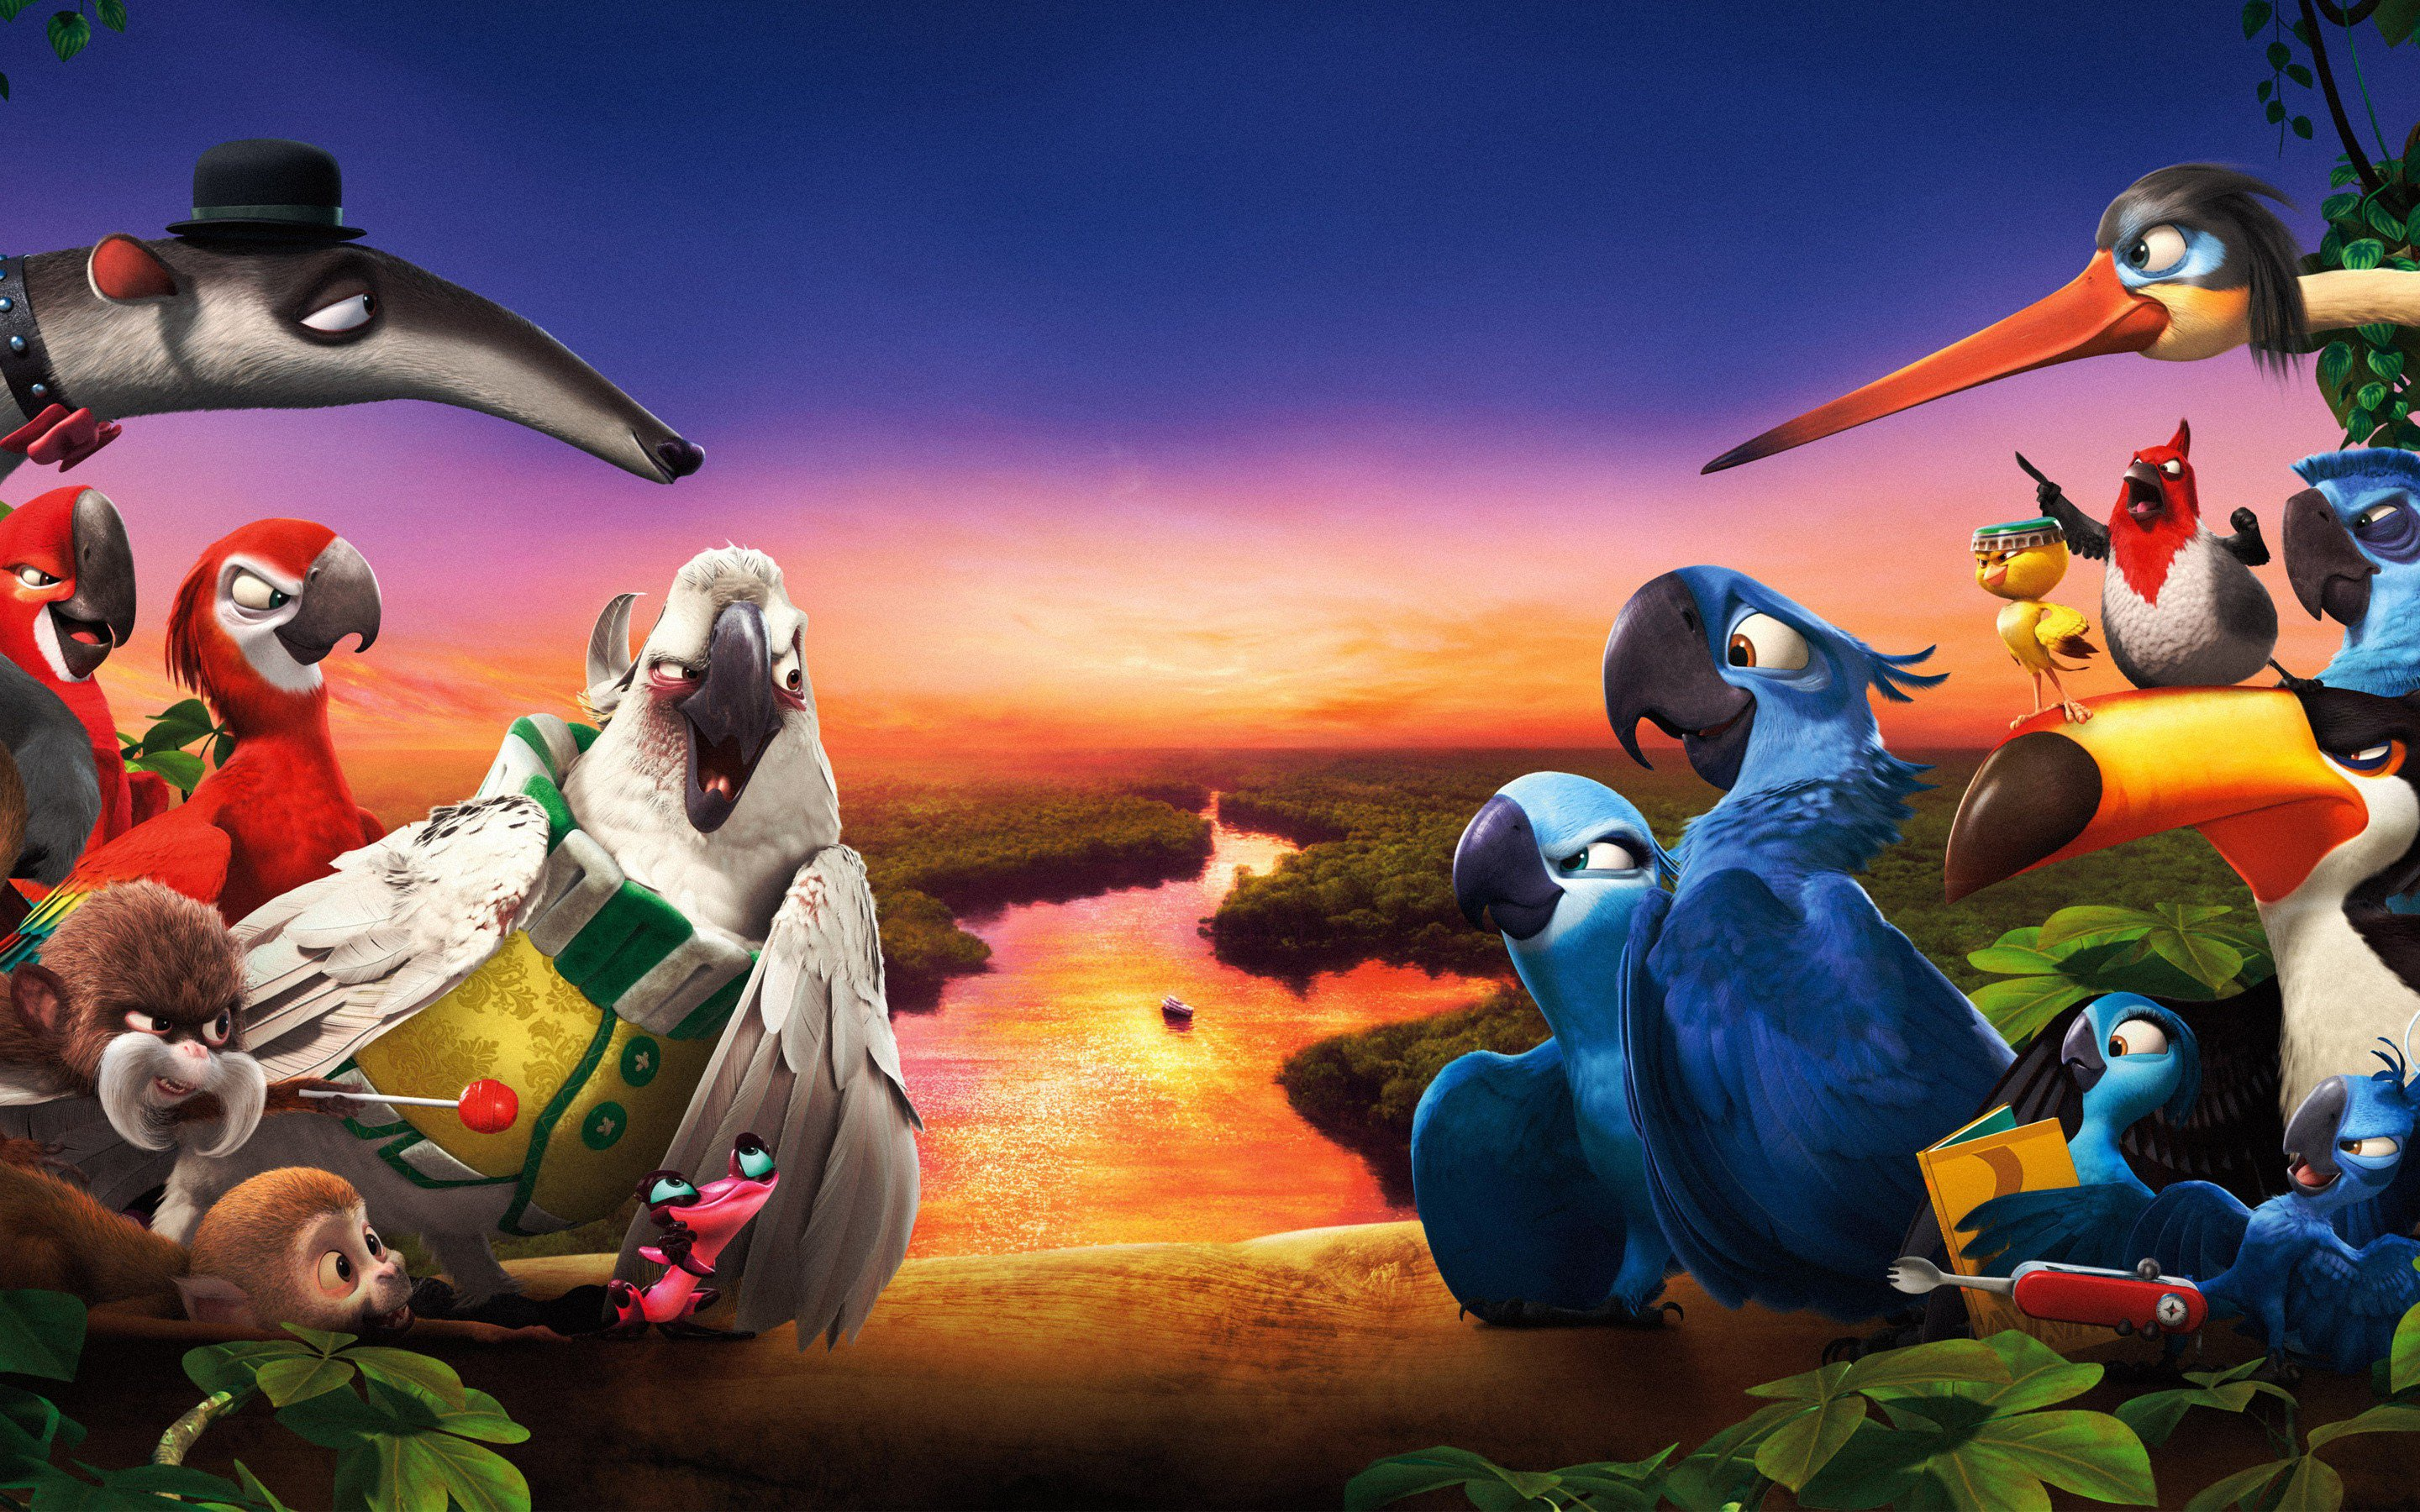 rio 2 movie wide, hd movies, 4k wallpapers, images, backgrounds